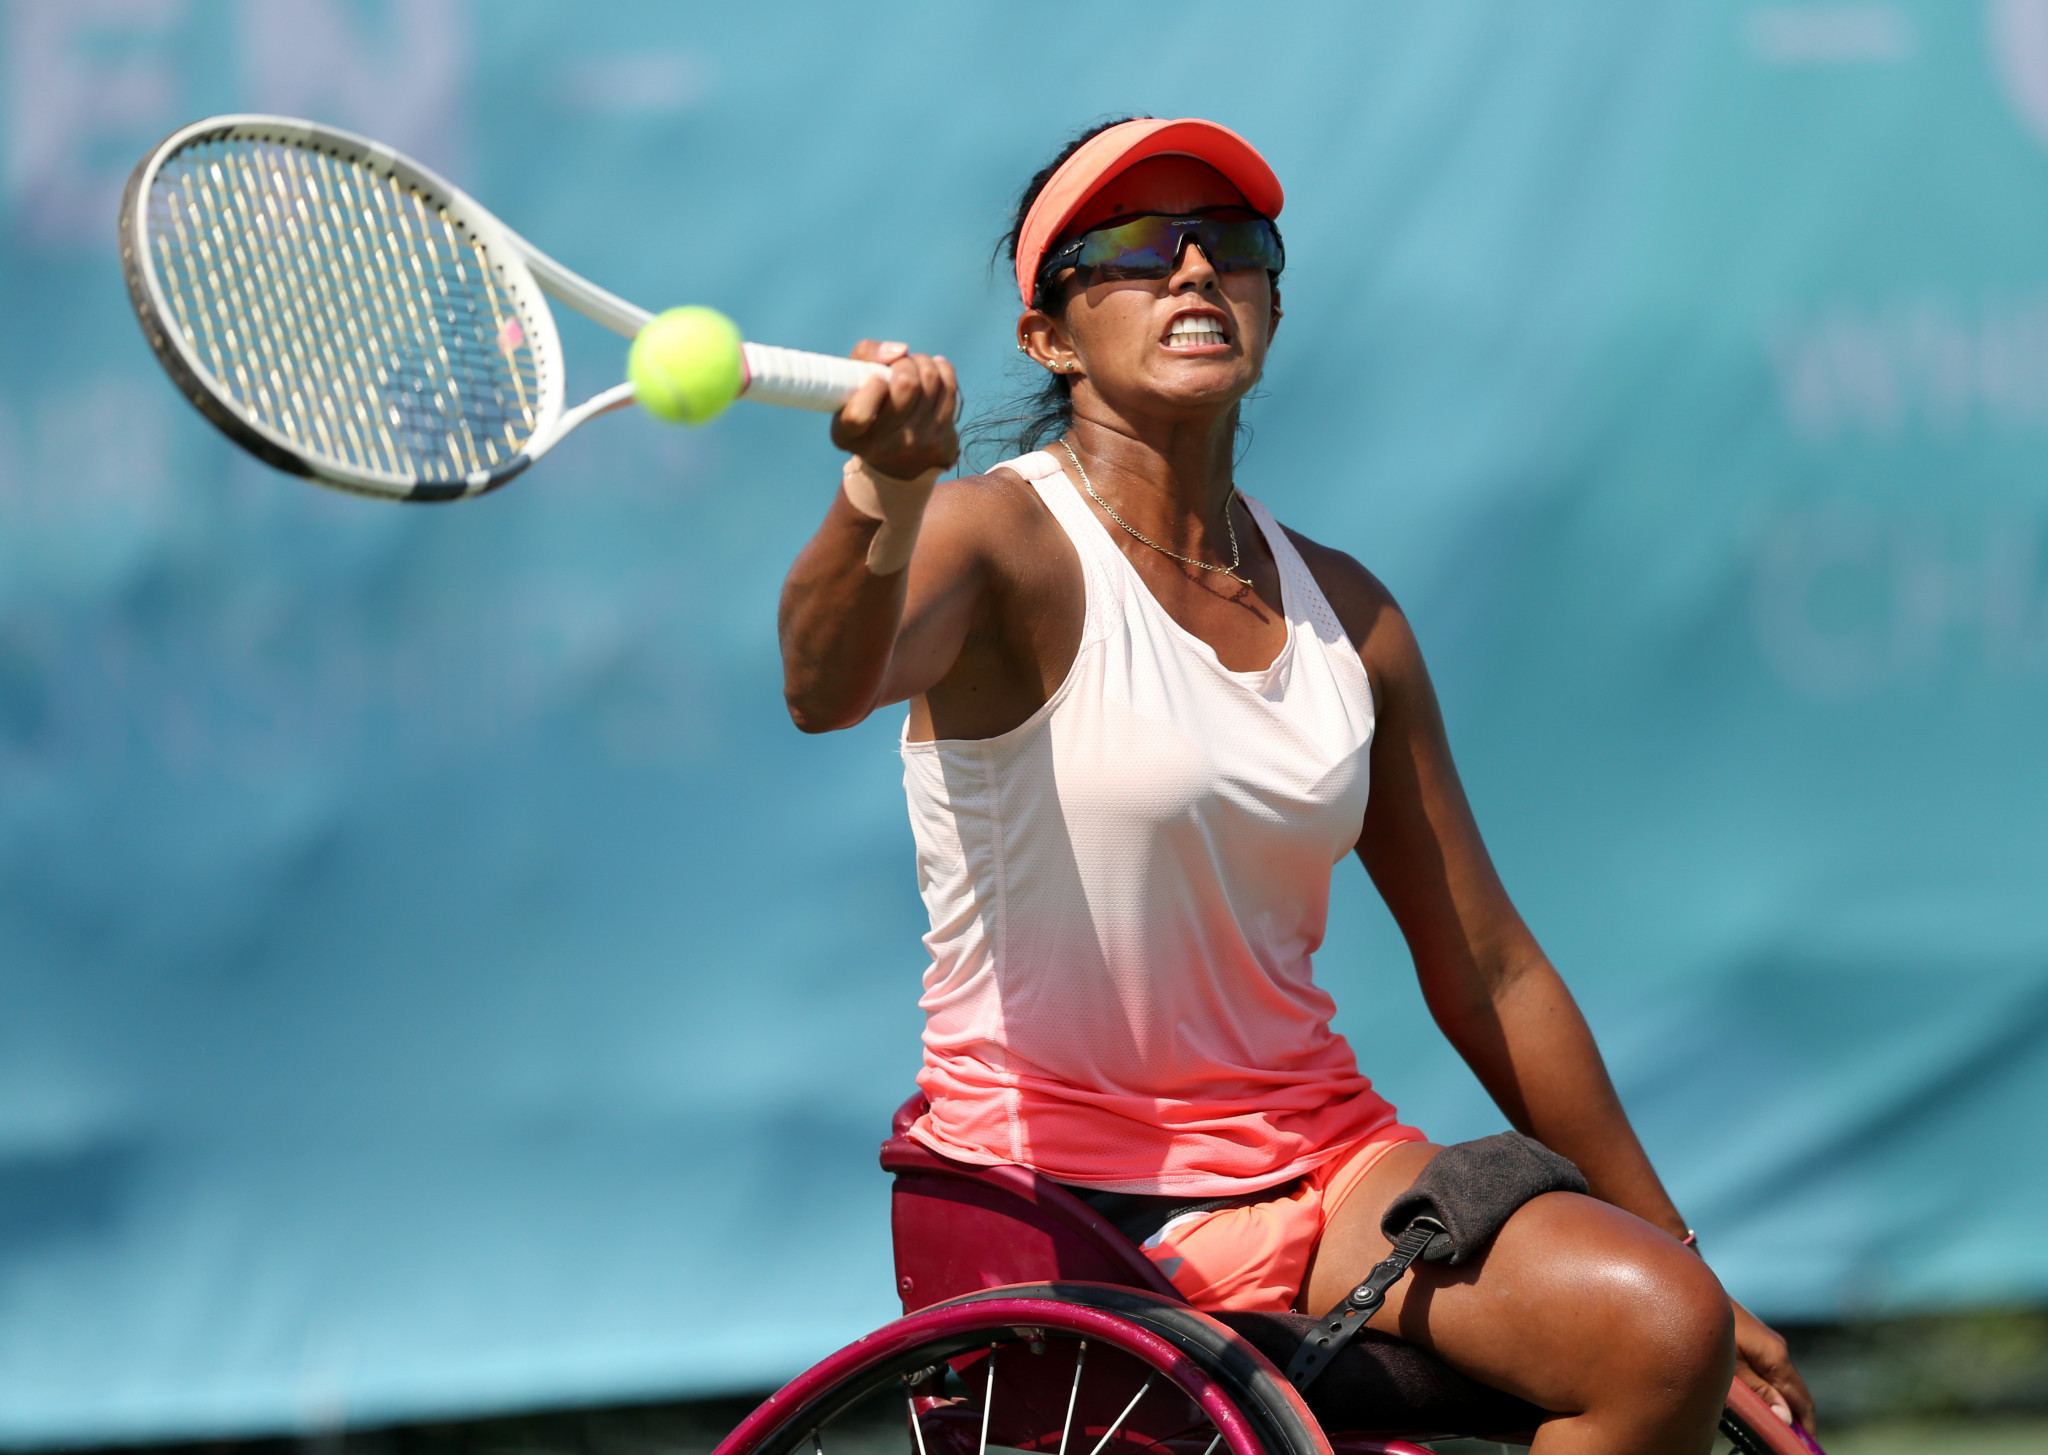 Colombian wheelchair tennis player wins APC Athlete of the Month